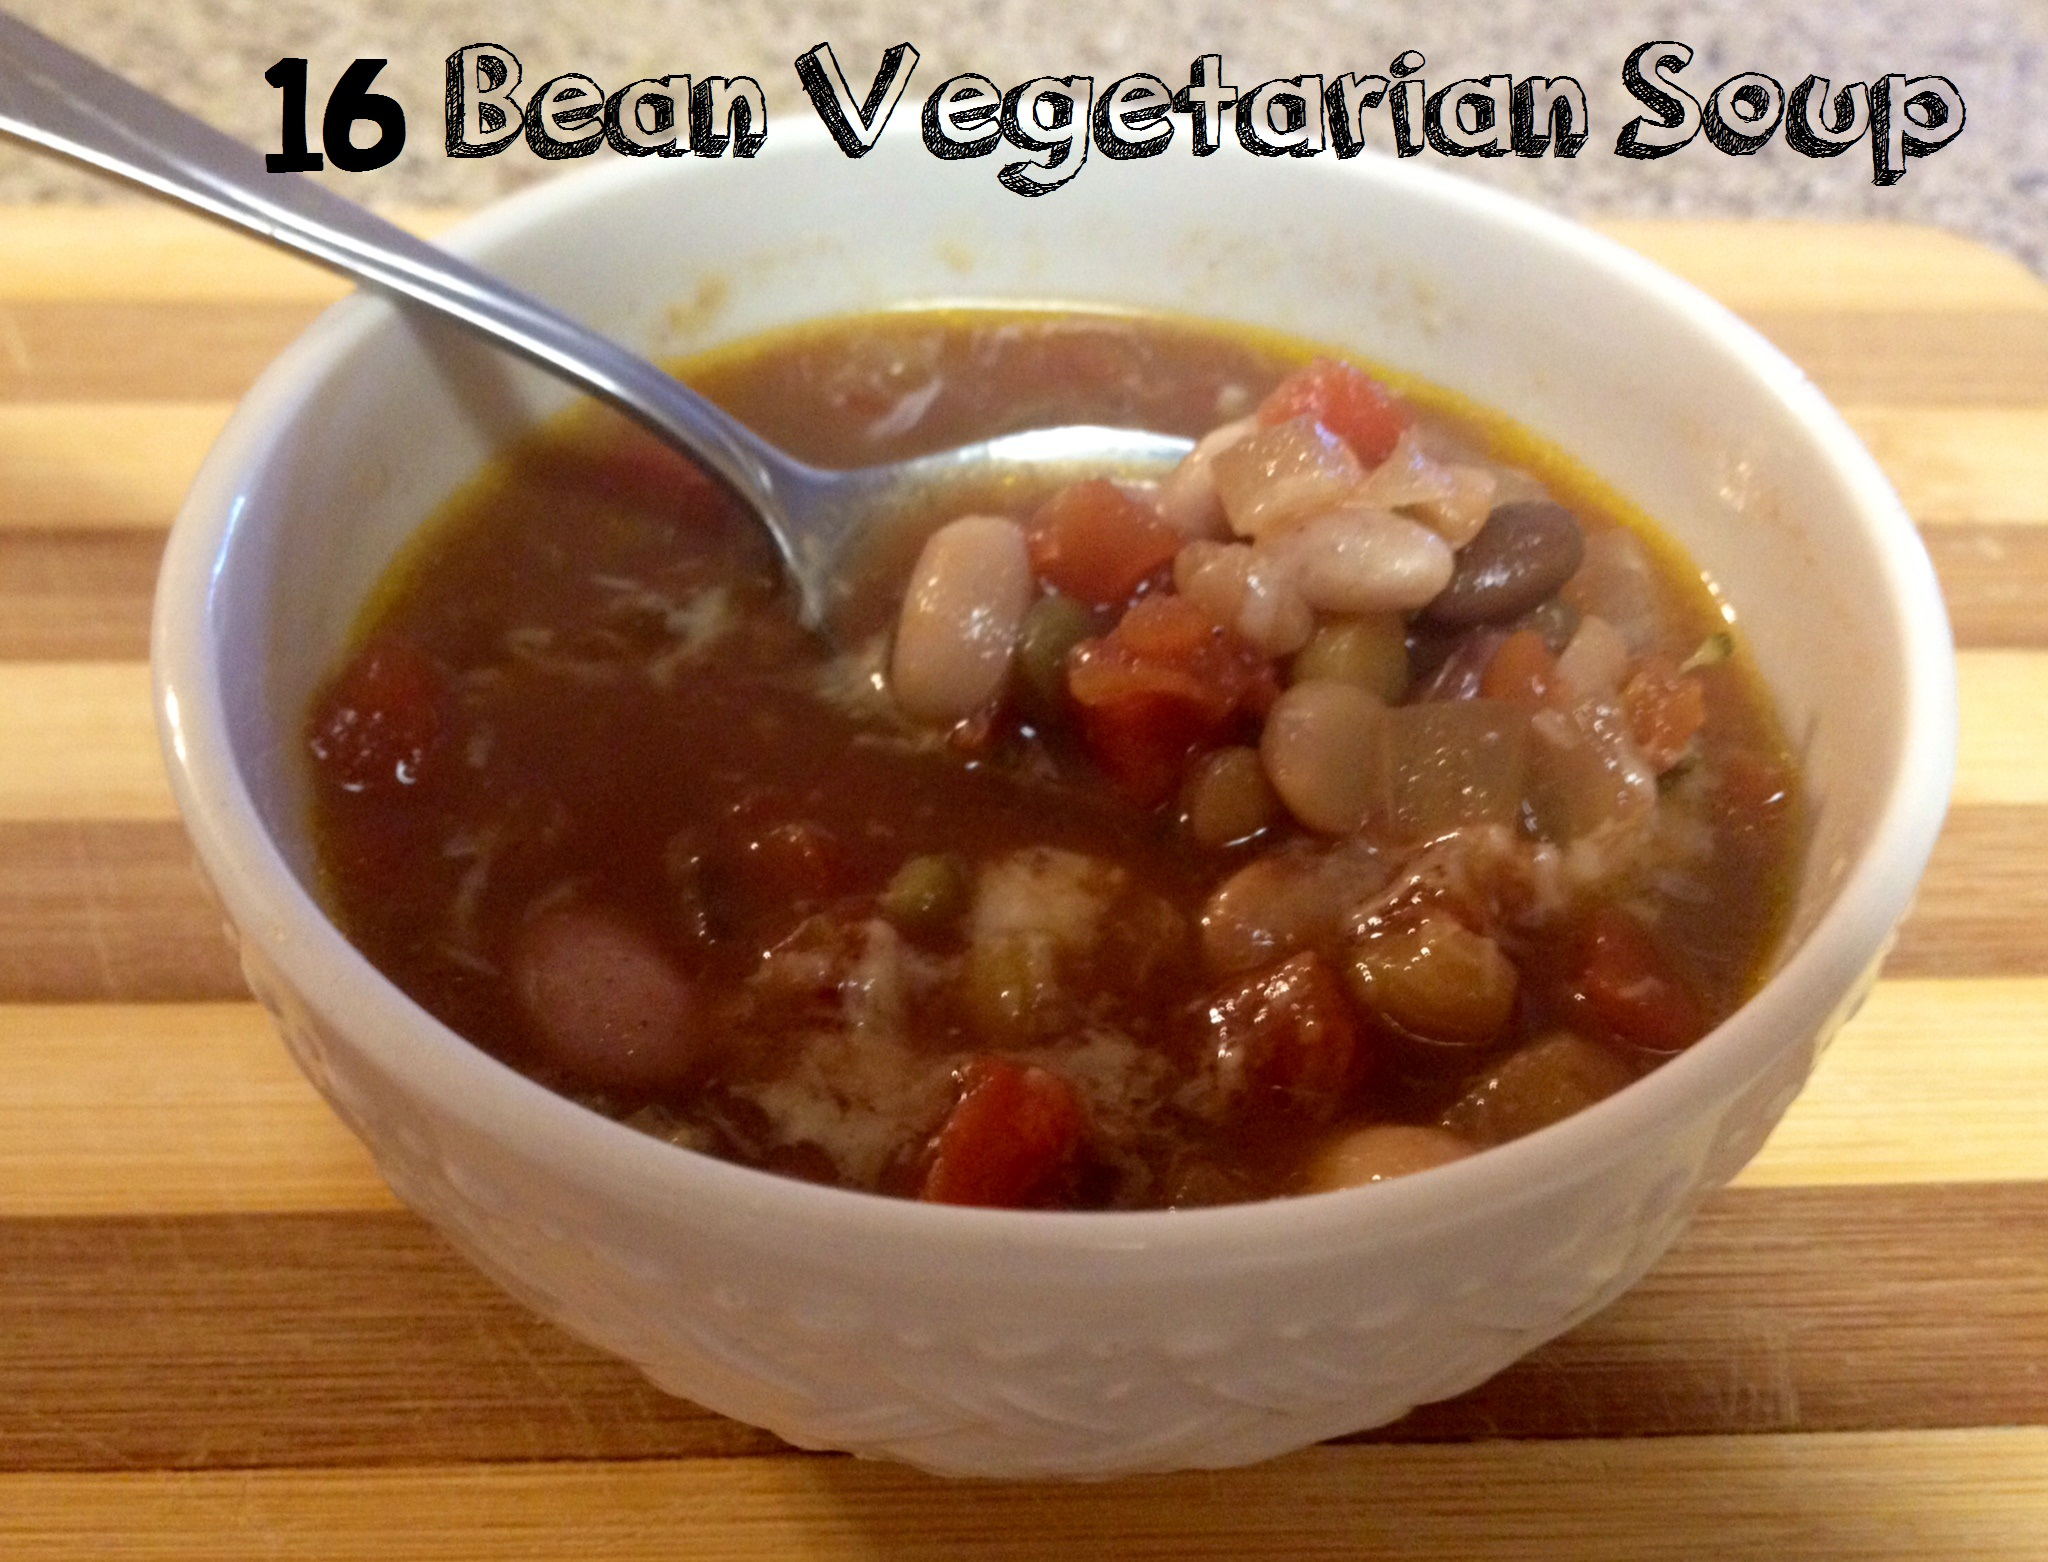 Vegetarian 16 Bean Soup Recipe – A Month of 365 Slow Cooker Suppers